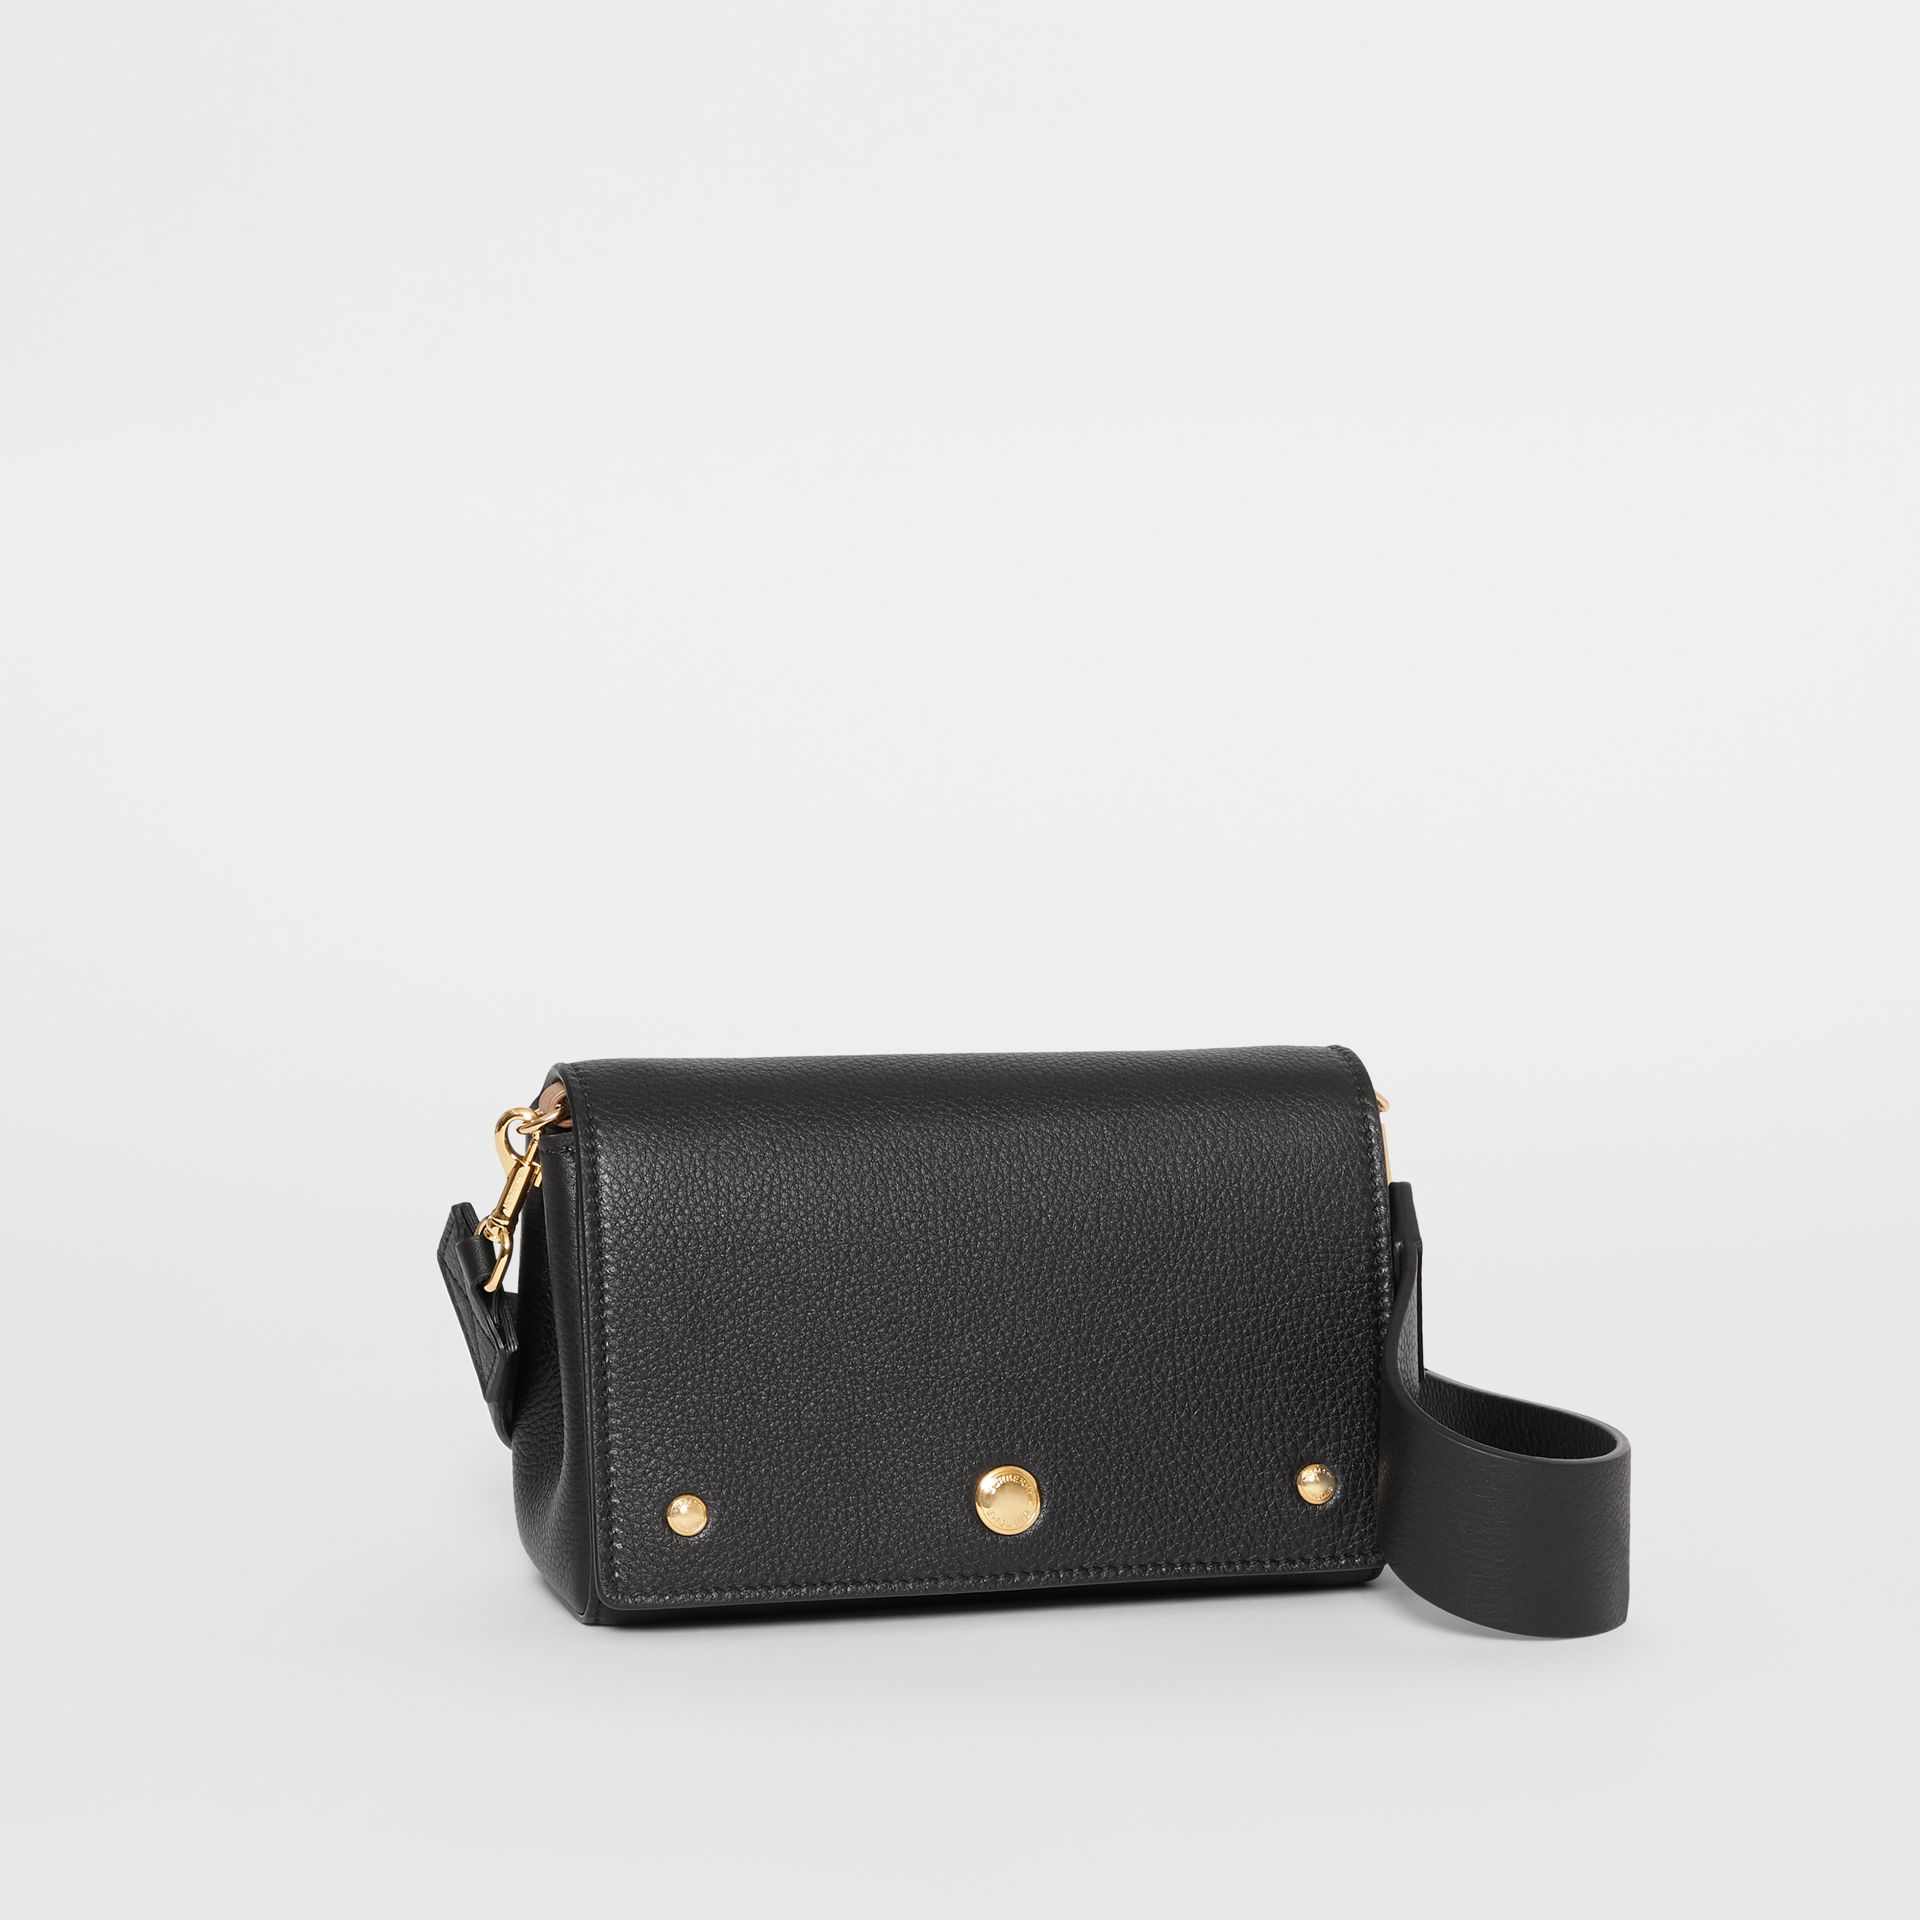 Small Grainy Leather Crossbody Bag in Black - Women | Burberry - gallery image 6